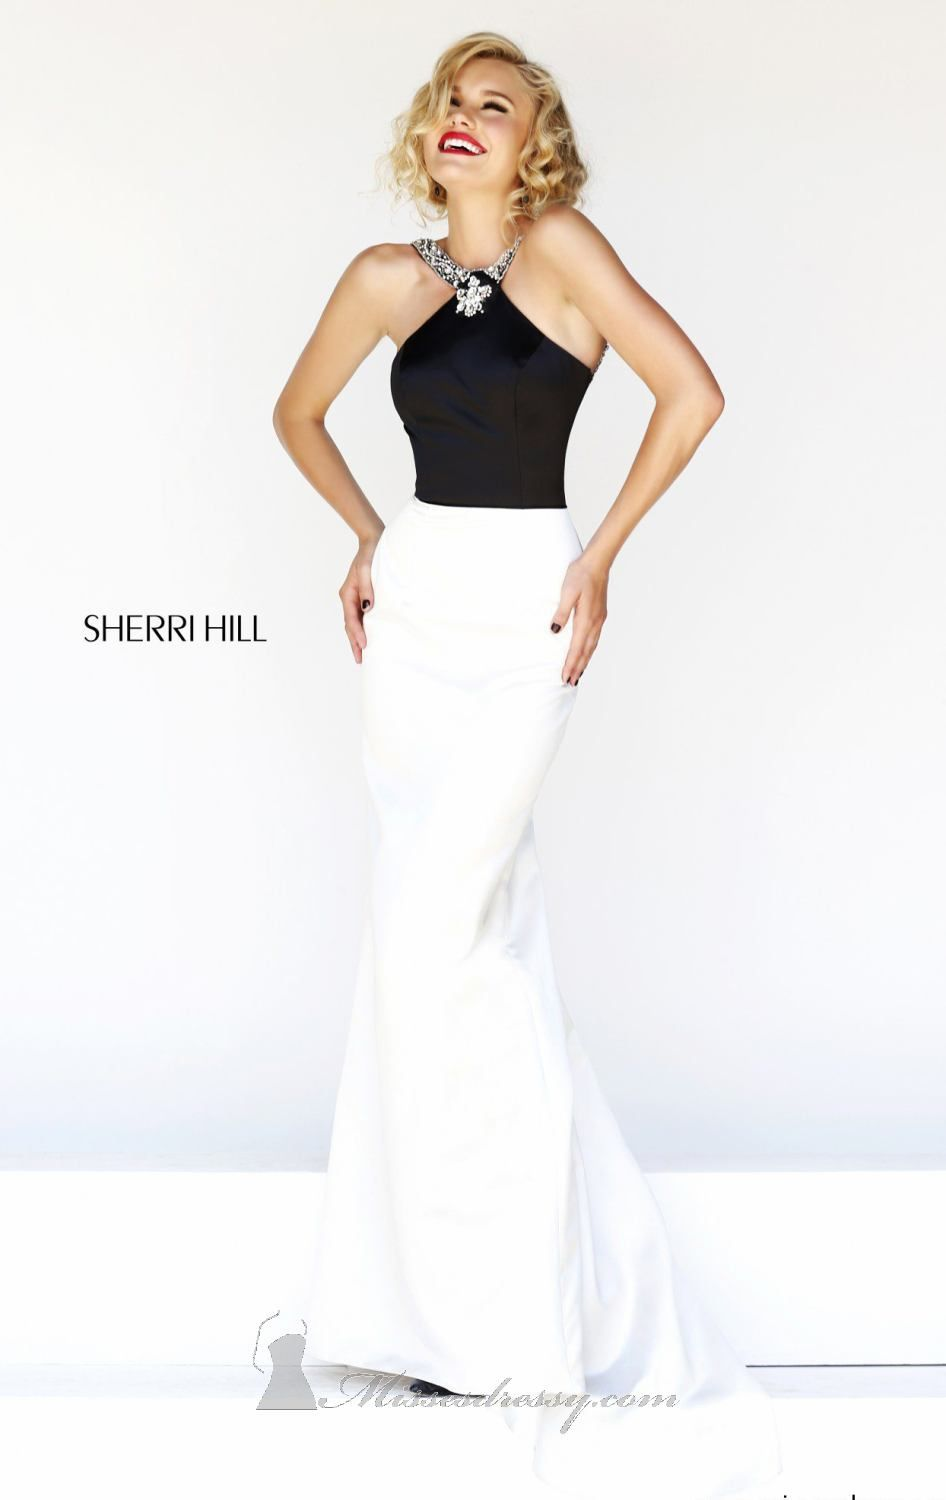 Sherri hill by sherri hill black and white pinterest